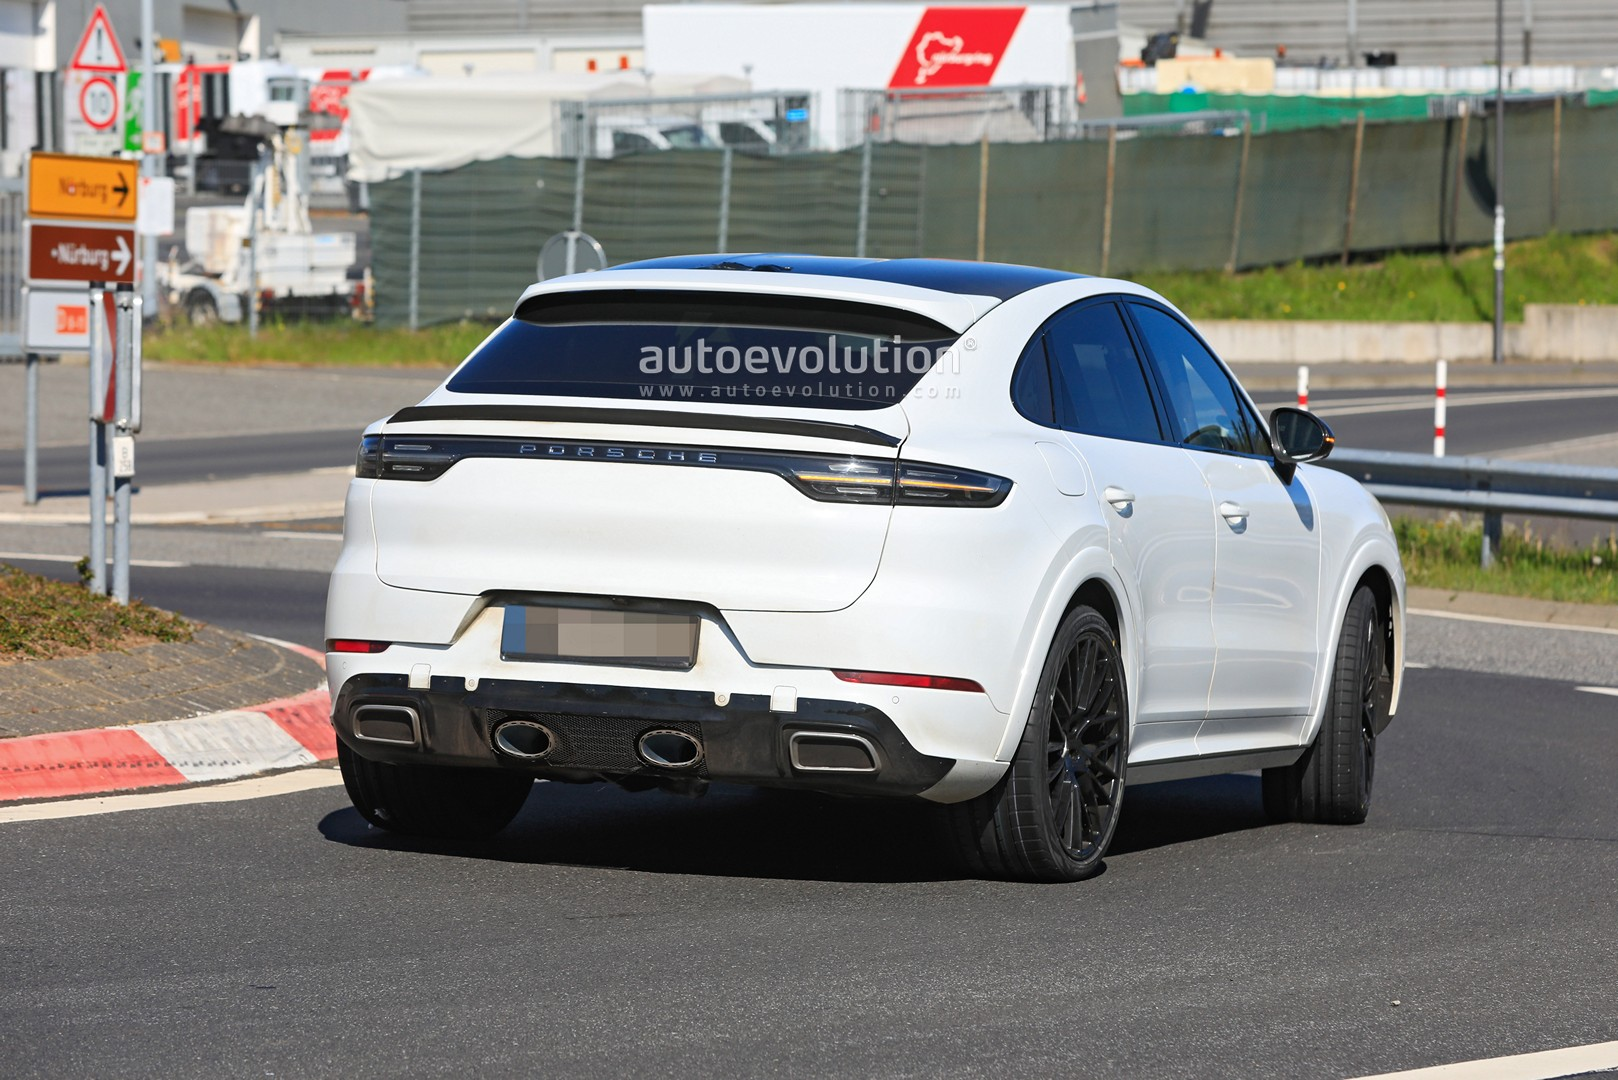 3 Porsche Cayenne GTS Coupe Plays the Fake Exhaust Game